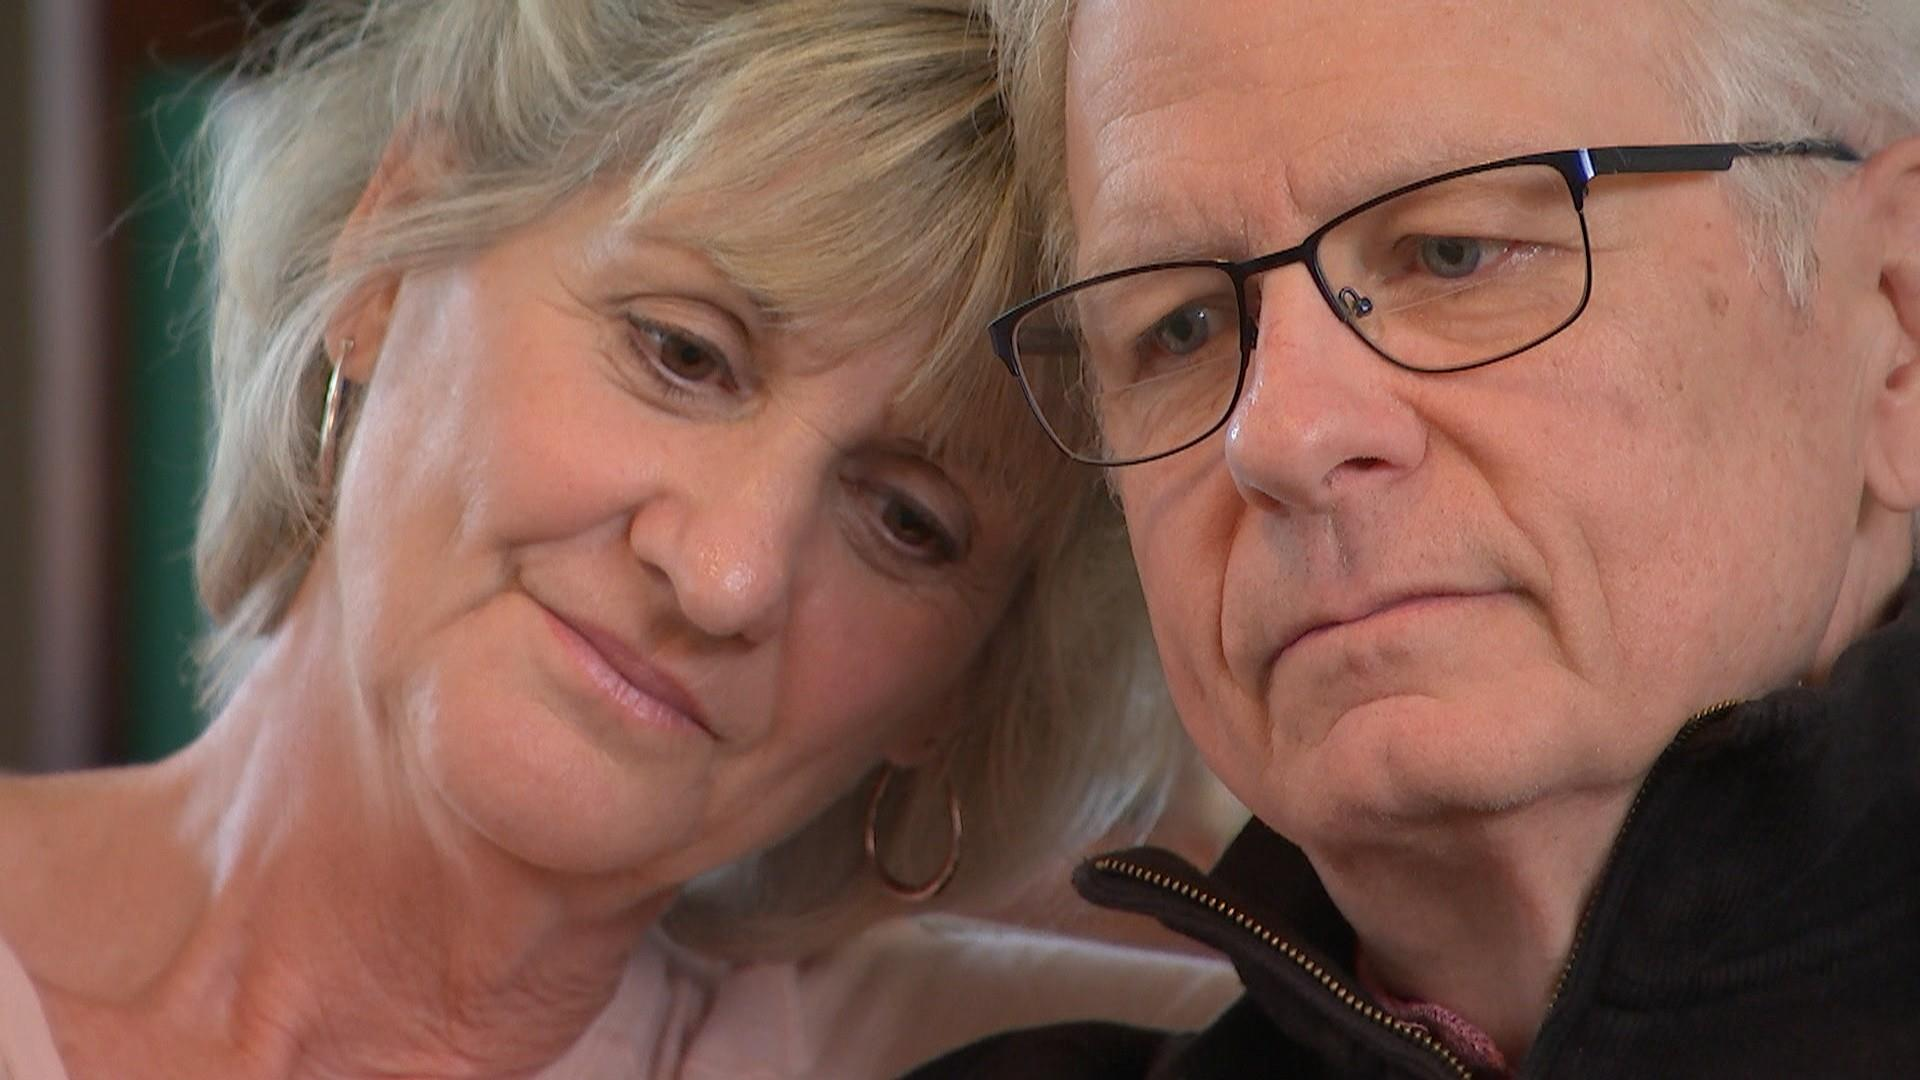 Drug curbs delusions, eases anger in Alzheimer's patients, researchers find